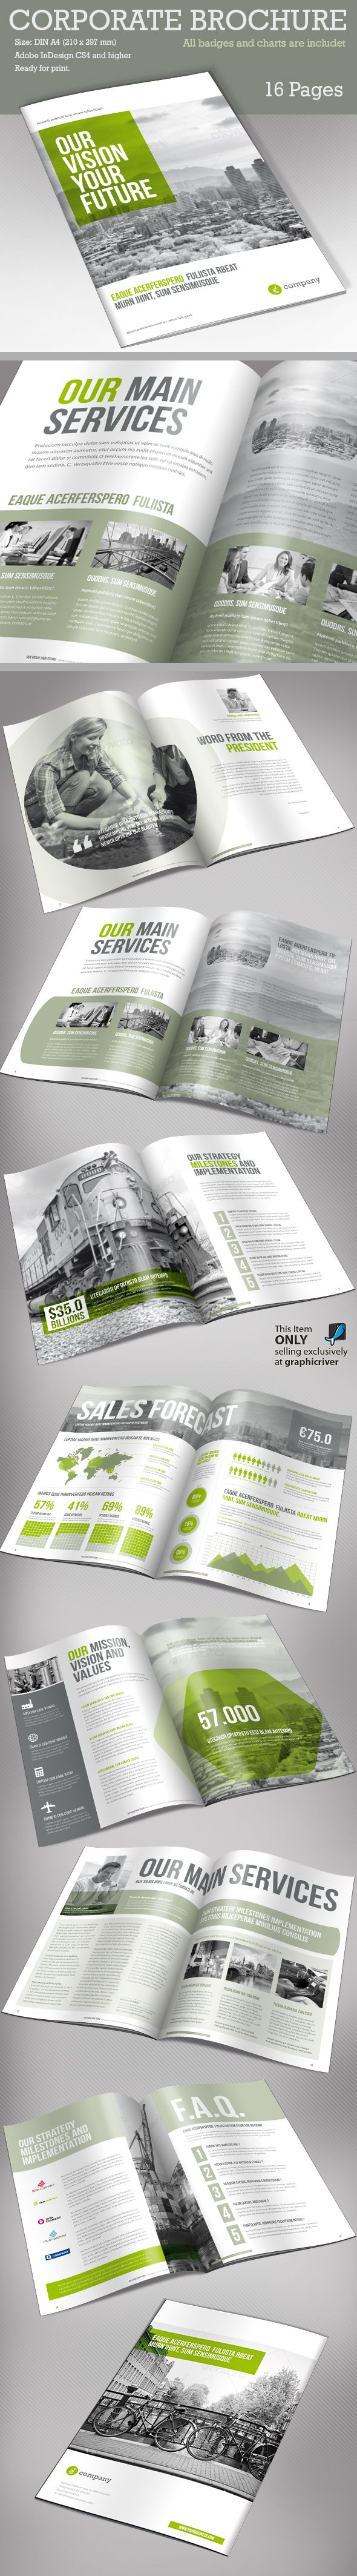 Corporate Brochure Vol 2 by Paulnomade Paulnomade, via Behance